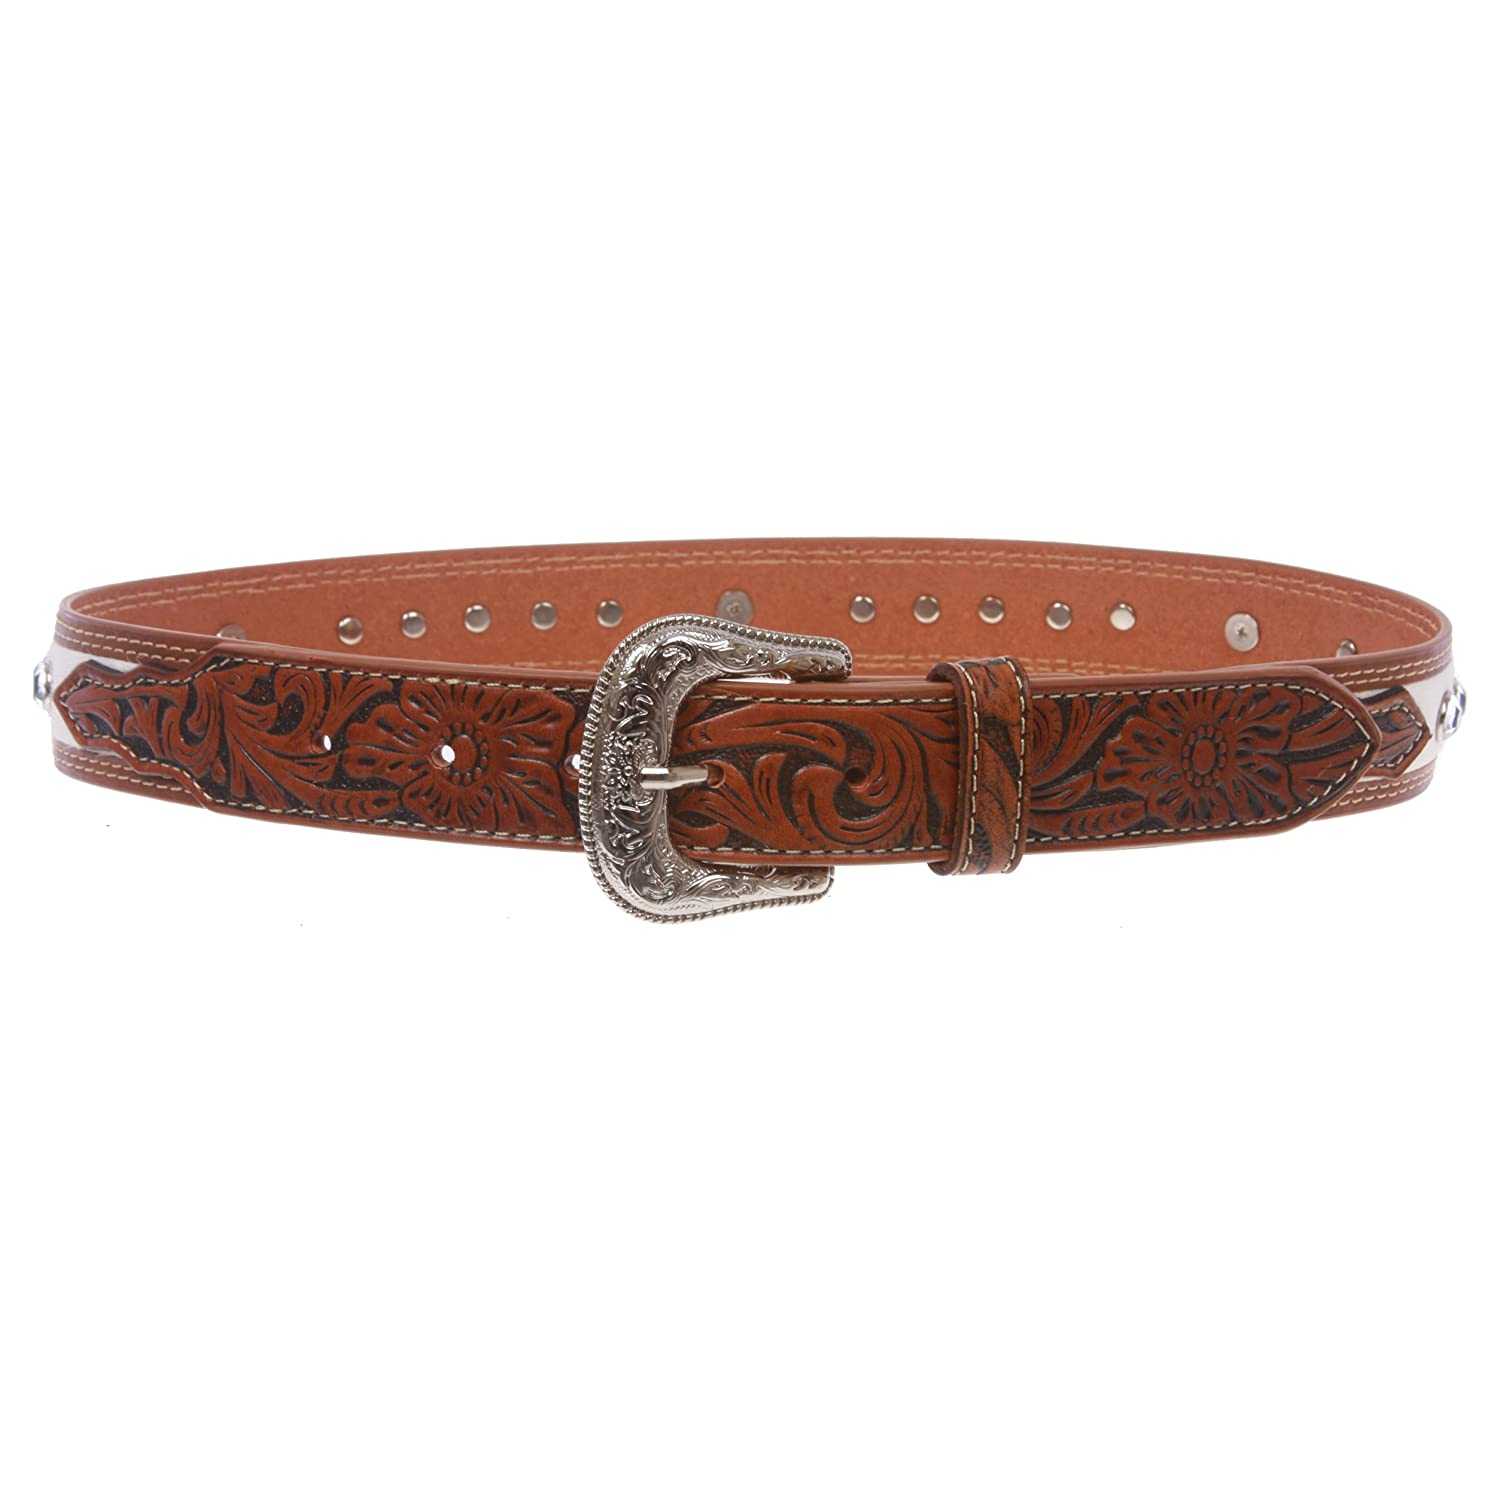 Kids Cowboy Cowgirl Western Rhinestone Belt with Silver Buckle Star Concho , tan/white | m 23- 25 Beltiscool cb111-lq7q-144it